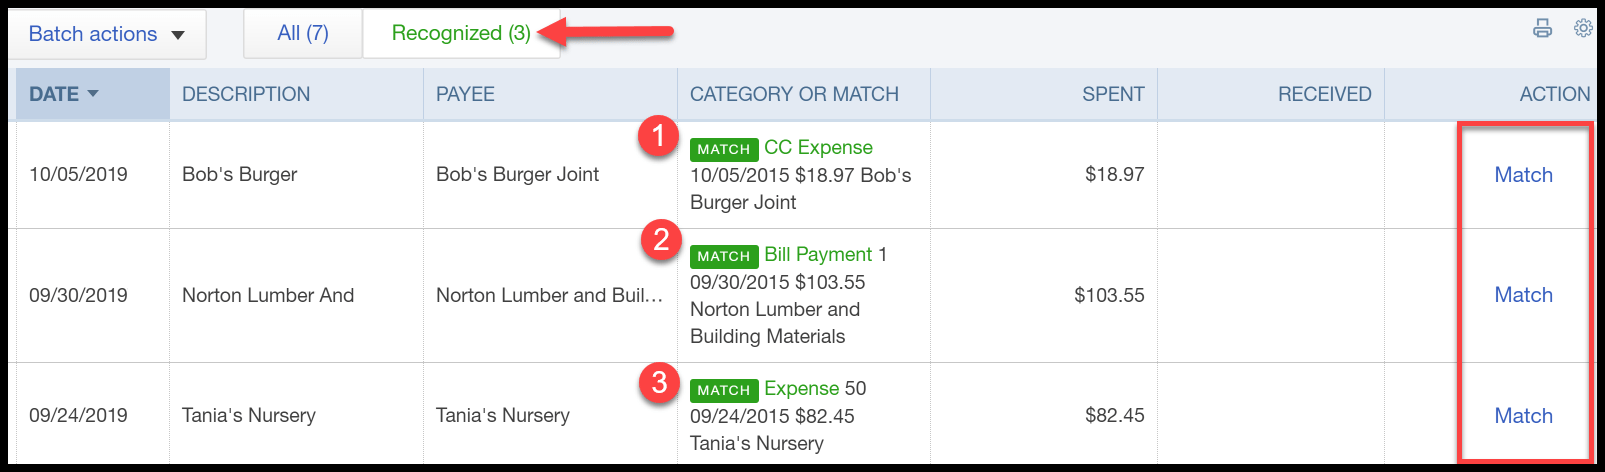 Review Transactions Tab in QuickBooks Online